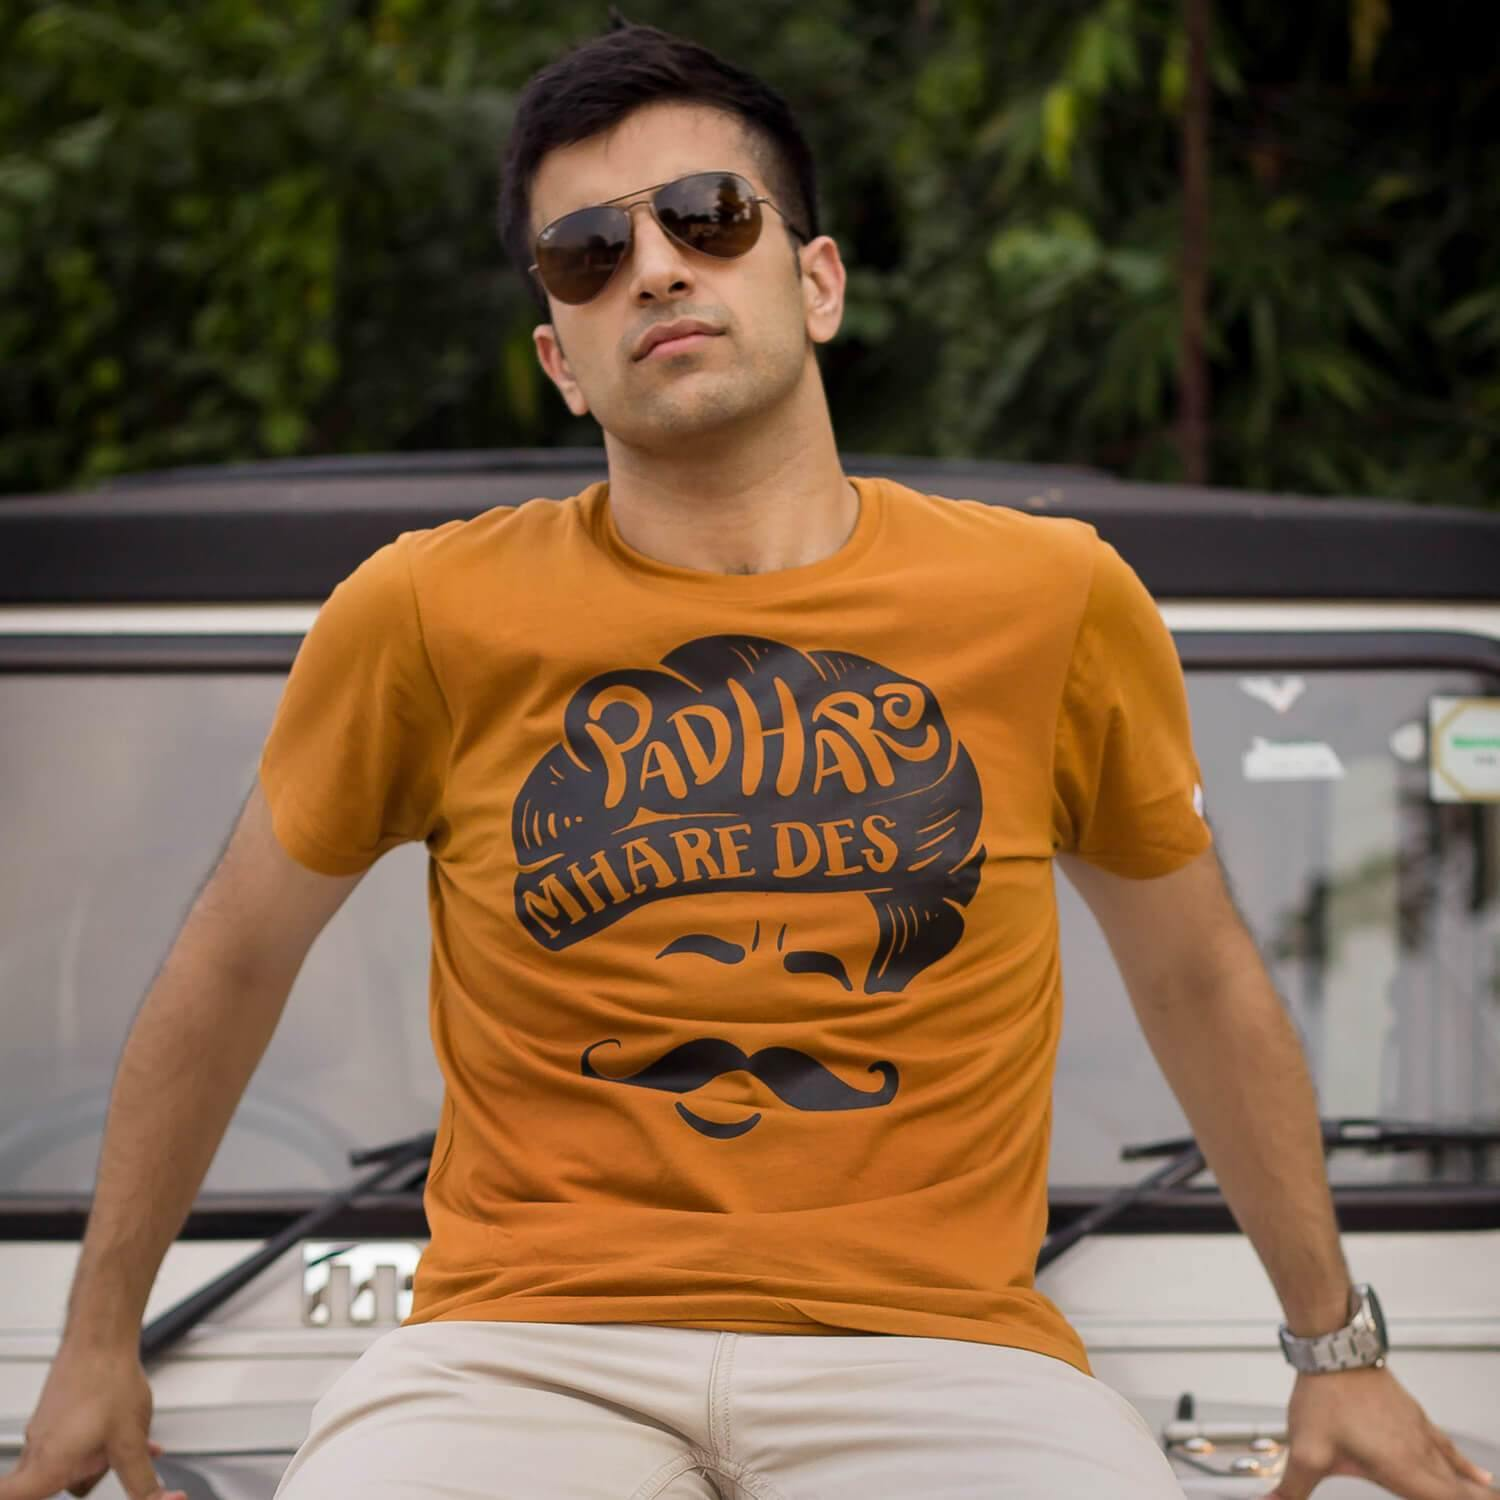 Padharo - Golden Brown T-Shirt - Raahi